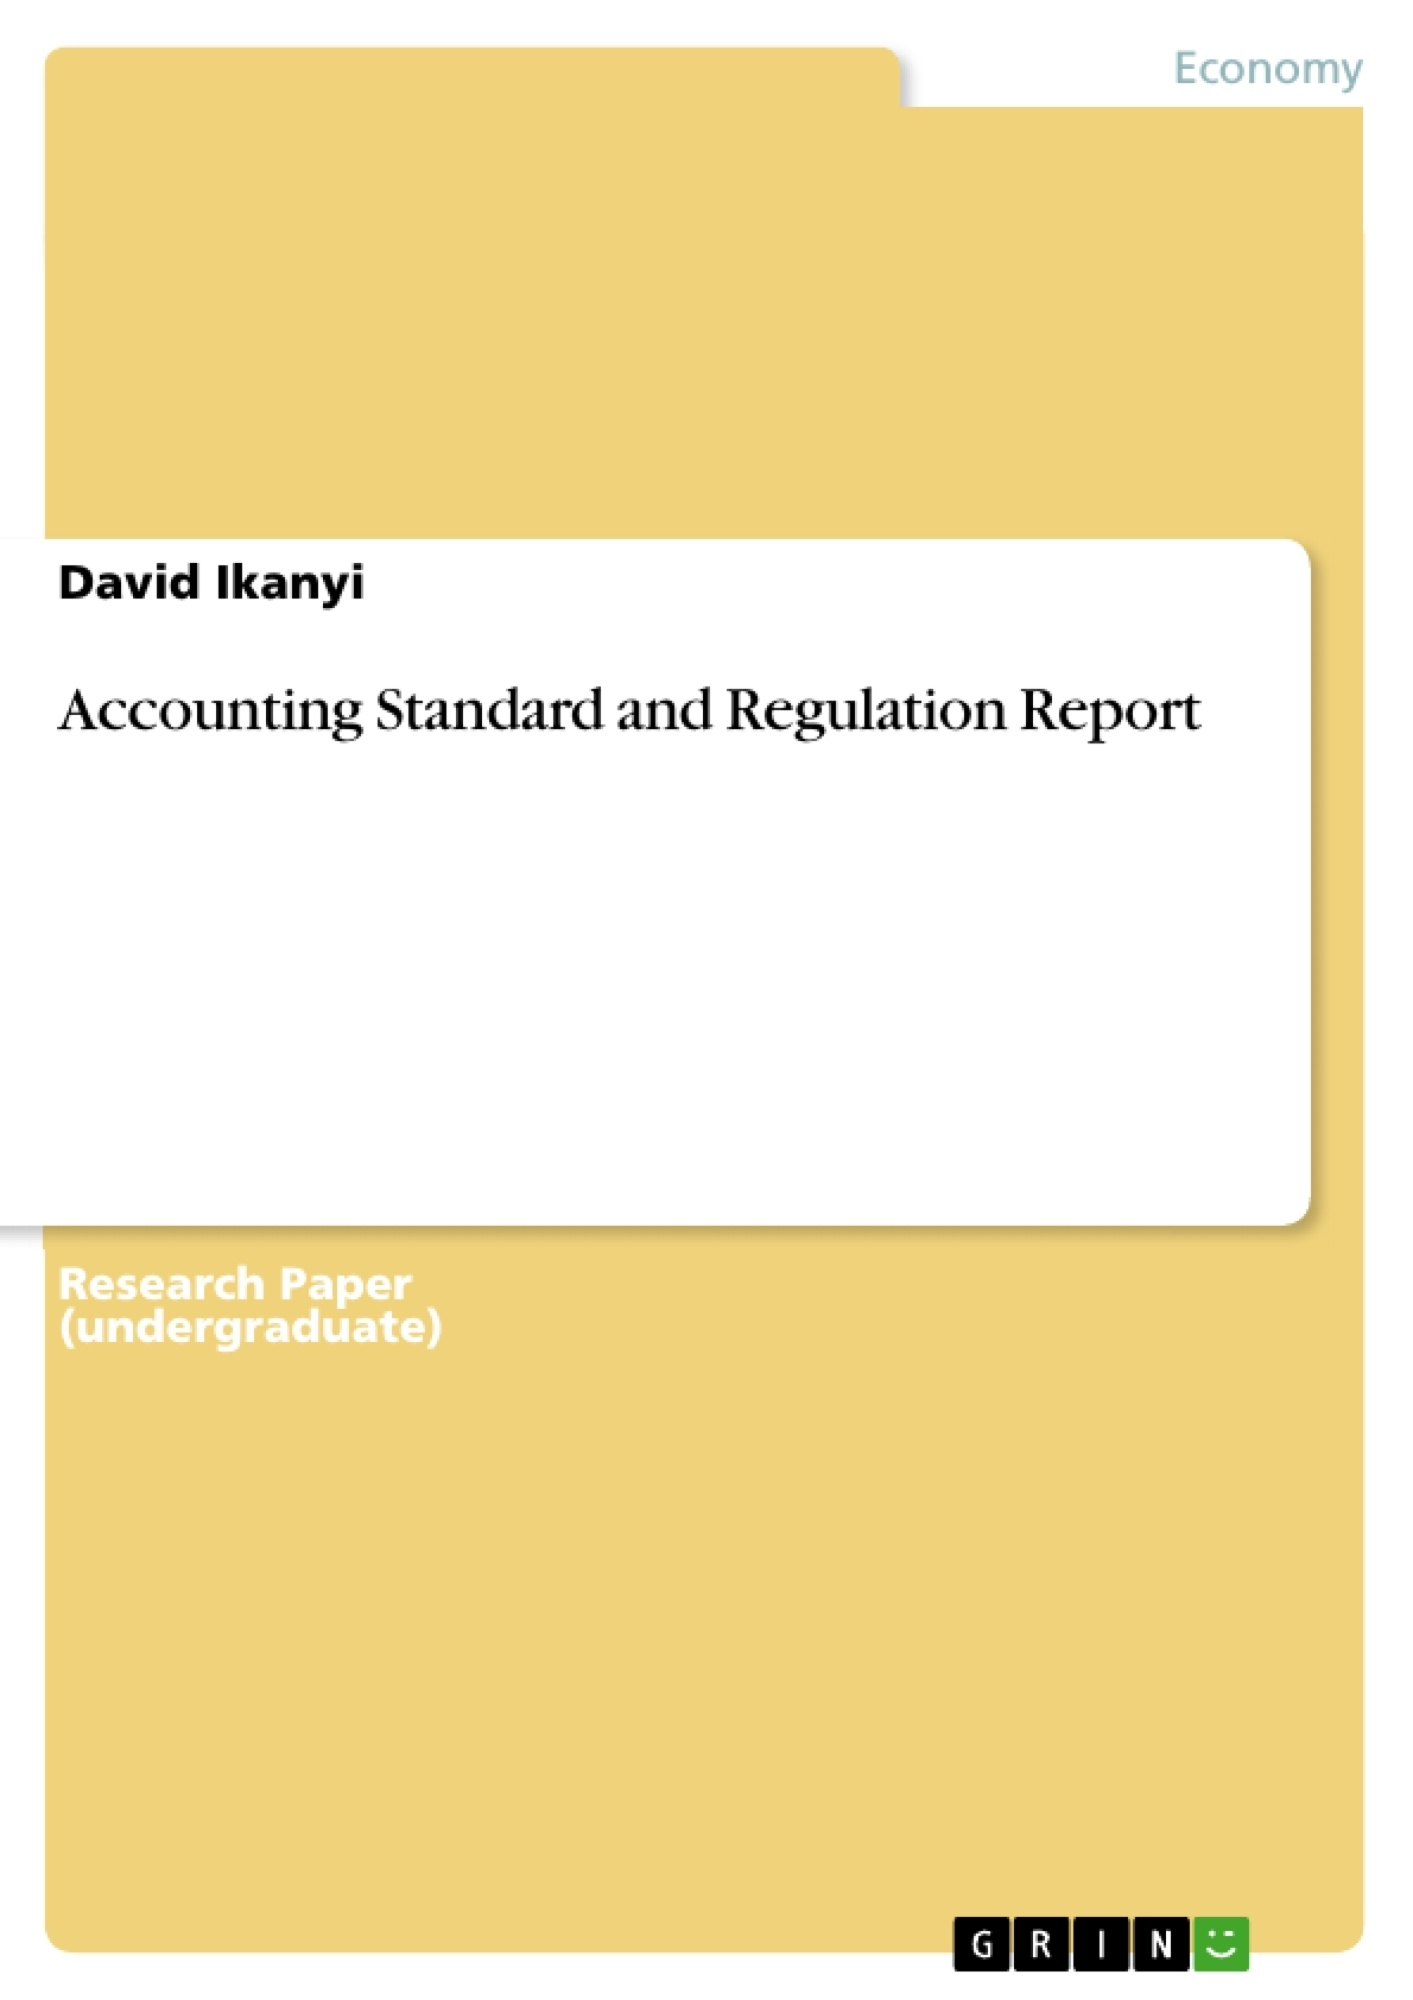 Title: Accounting Standard and Regulation Report